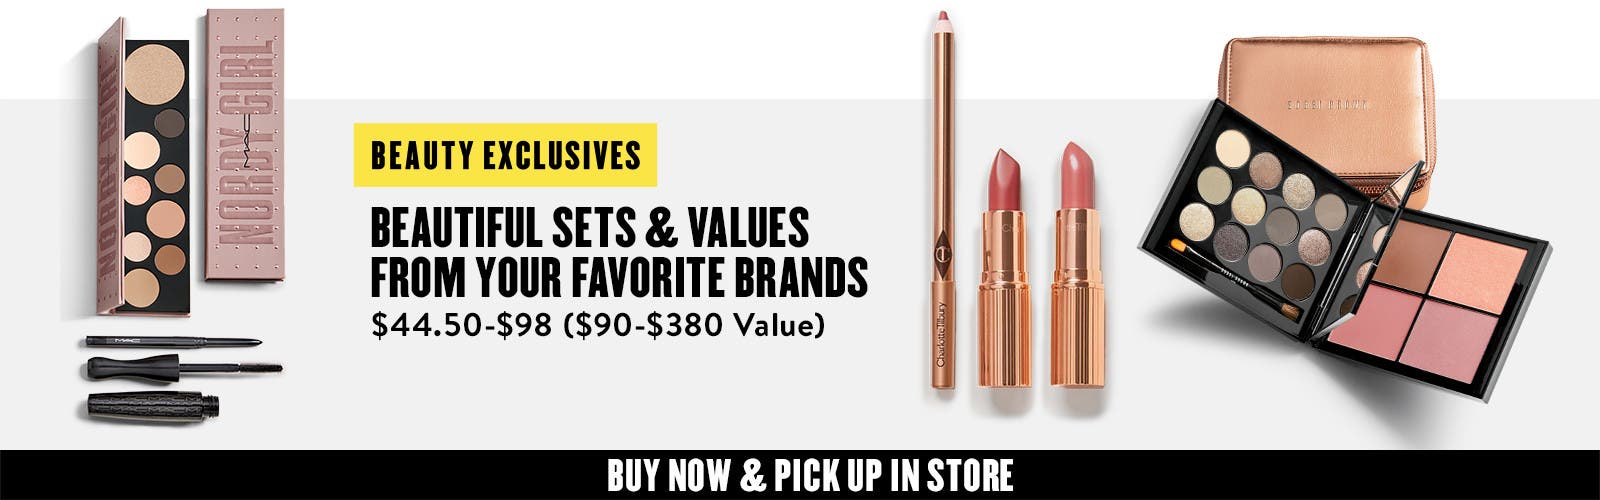 Anniversary makeup exclusives.